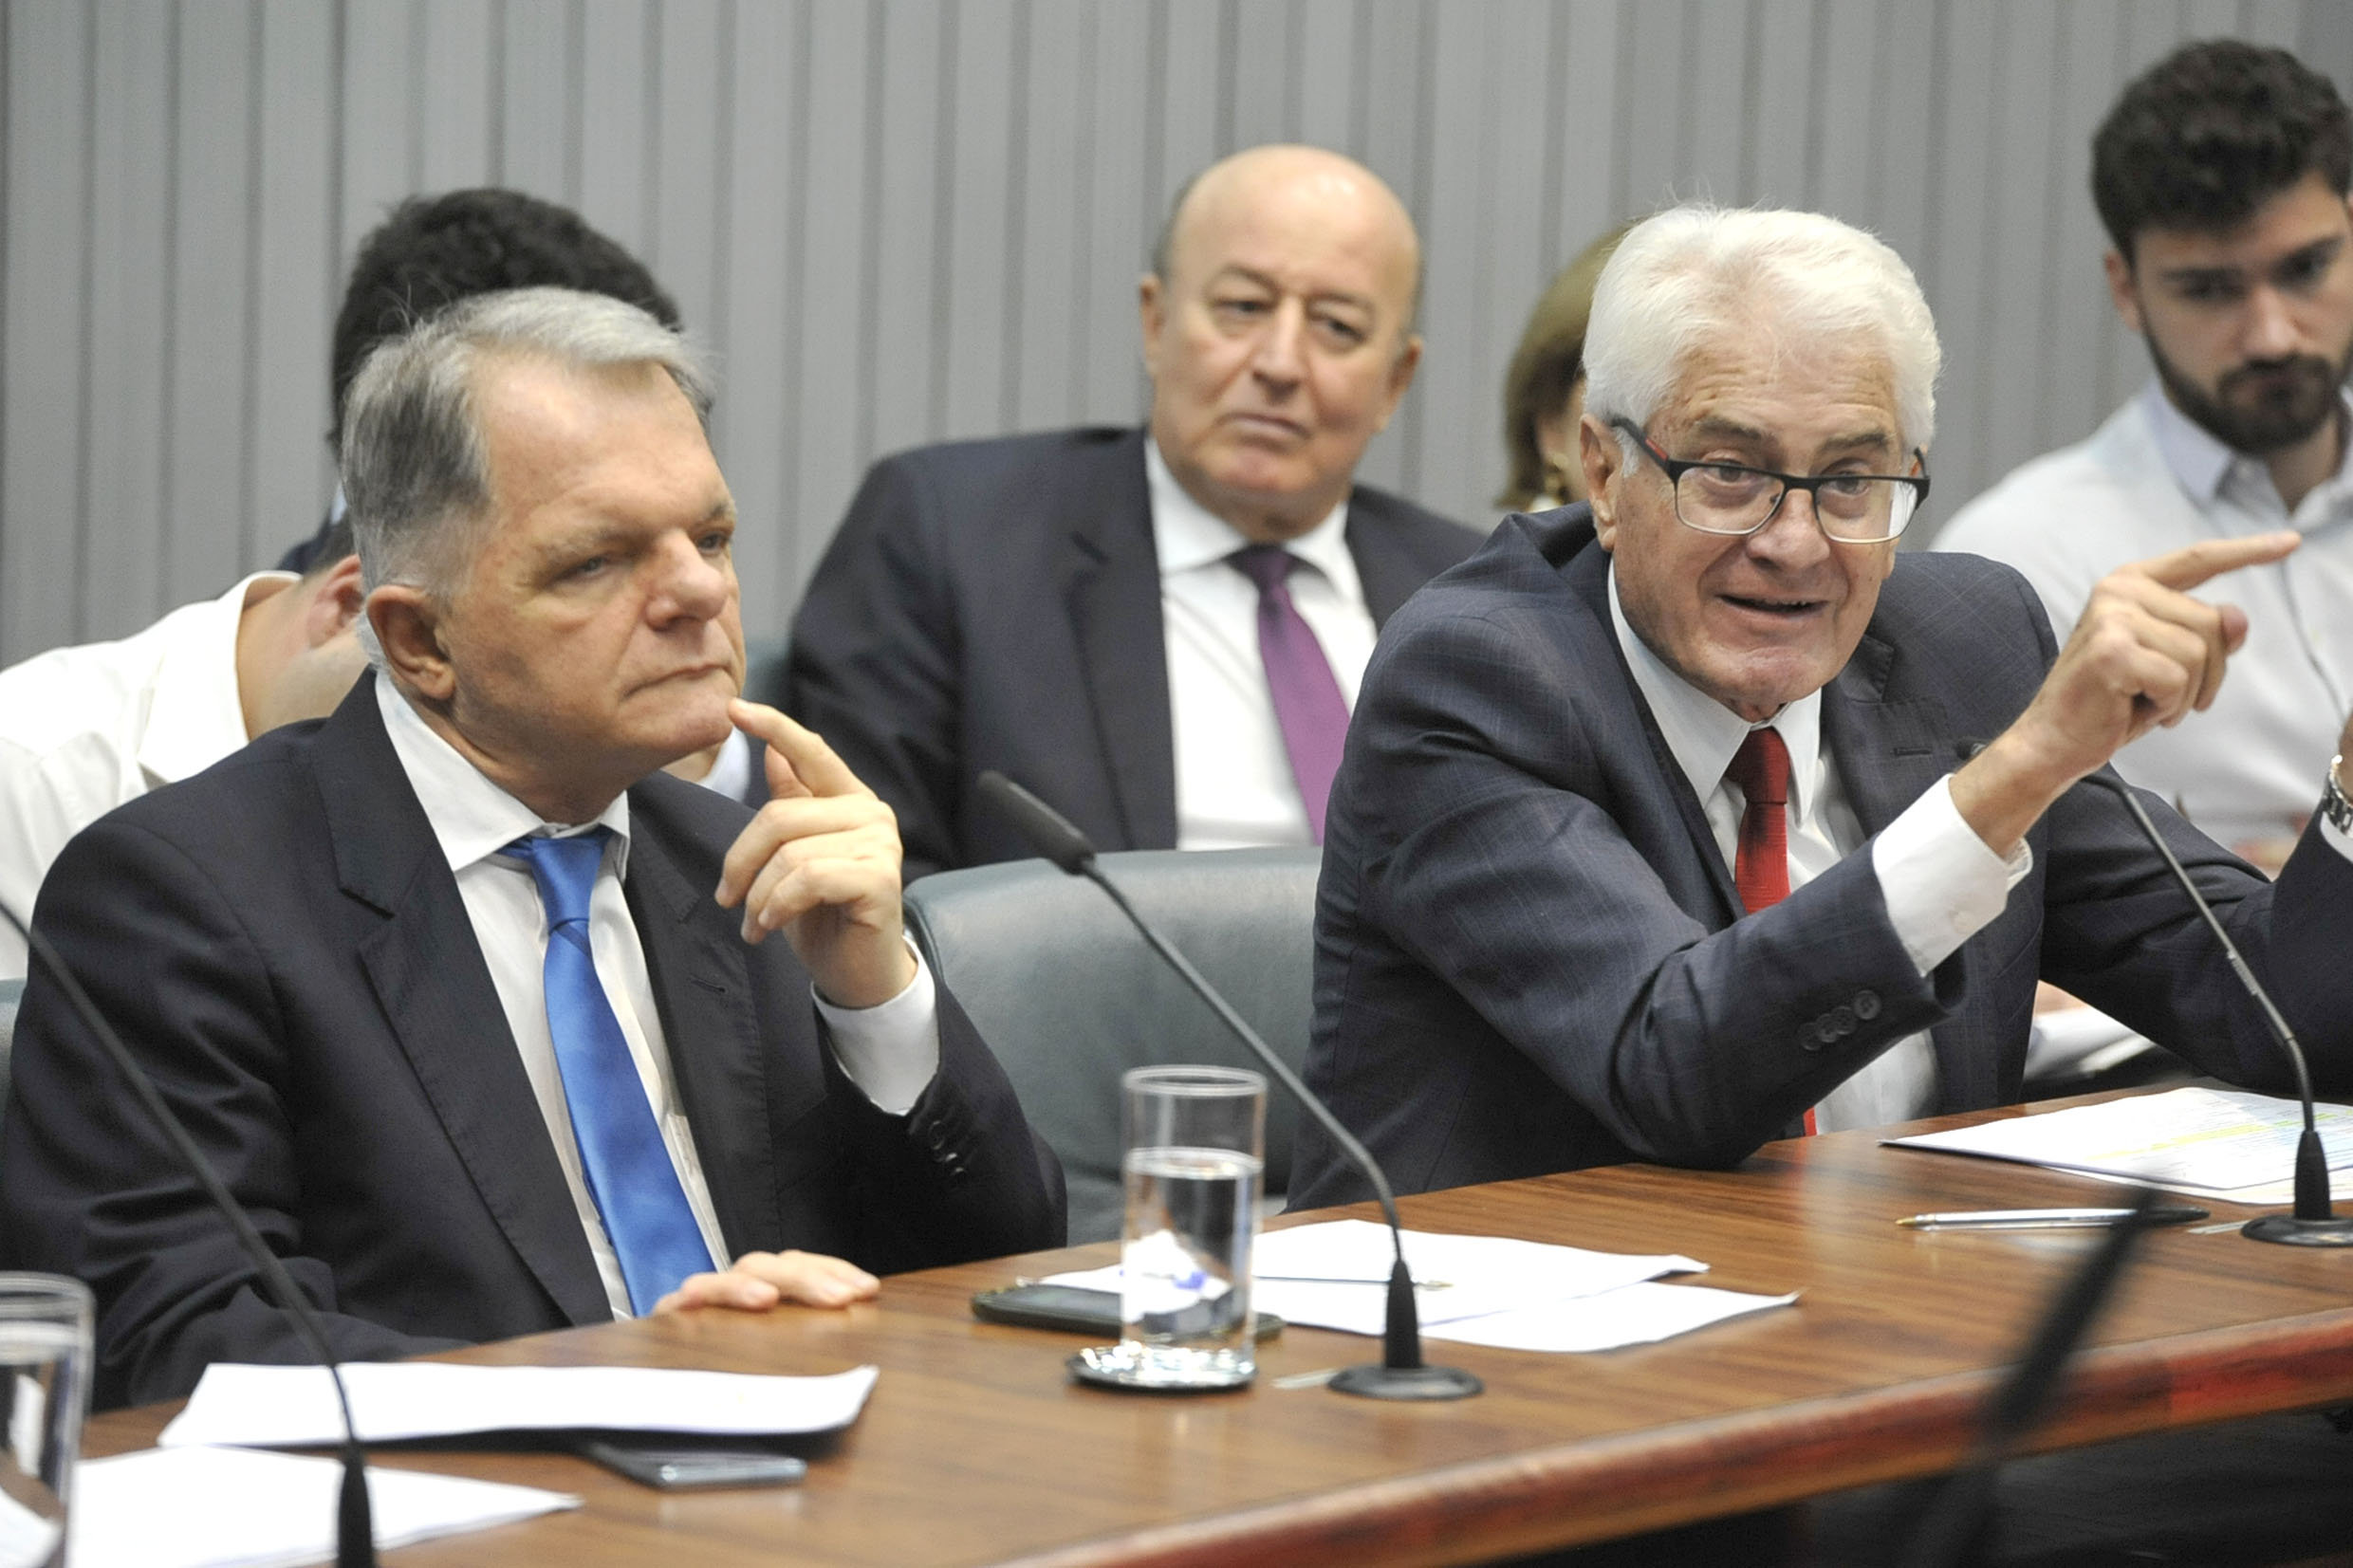 Mauro Bragato e Roberto Engler<a style='float:right' href='https://www3.al.sp.gov.br/repositorio/noticia/N-08-2019/fg237900.jpg' target=_blank><img src='/_img/material-file-download-white.png' width='14px' alt='Clique para baixar a imagem'></a>